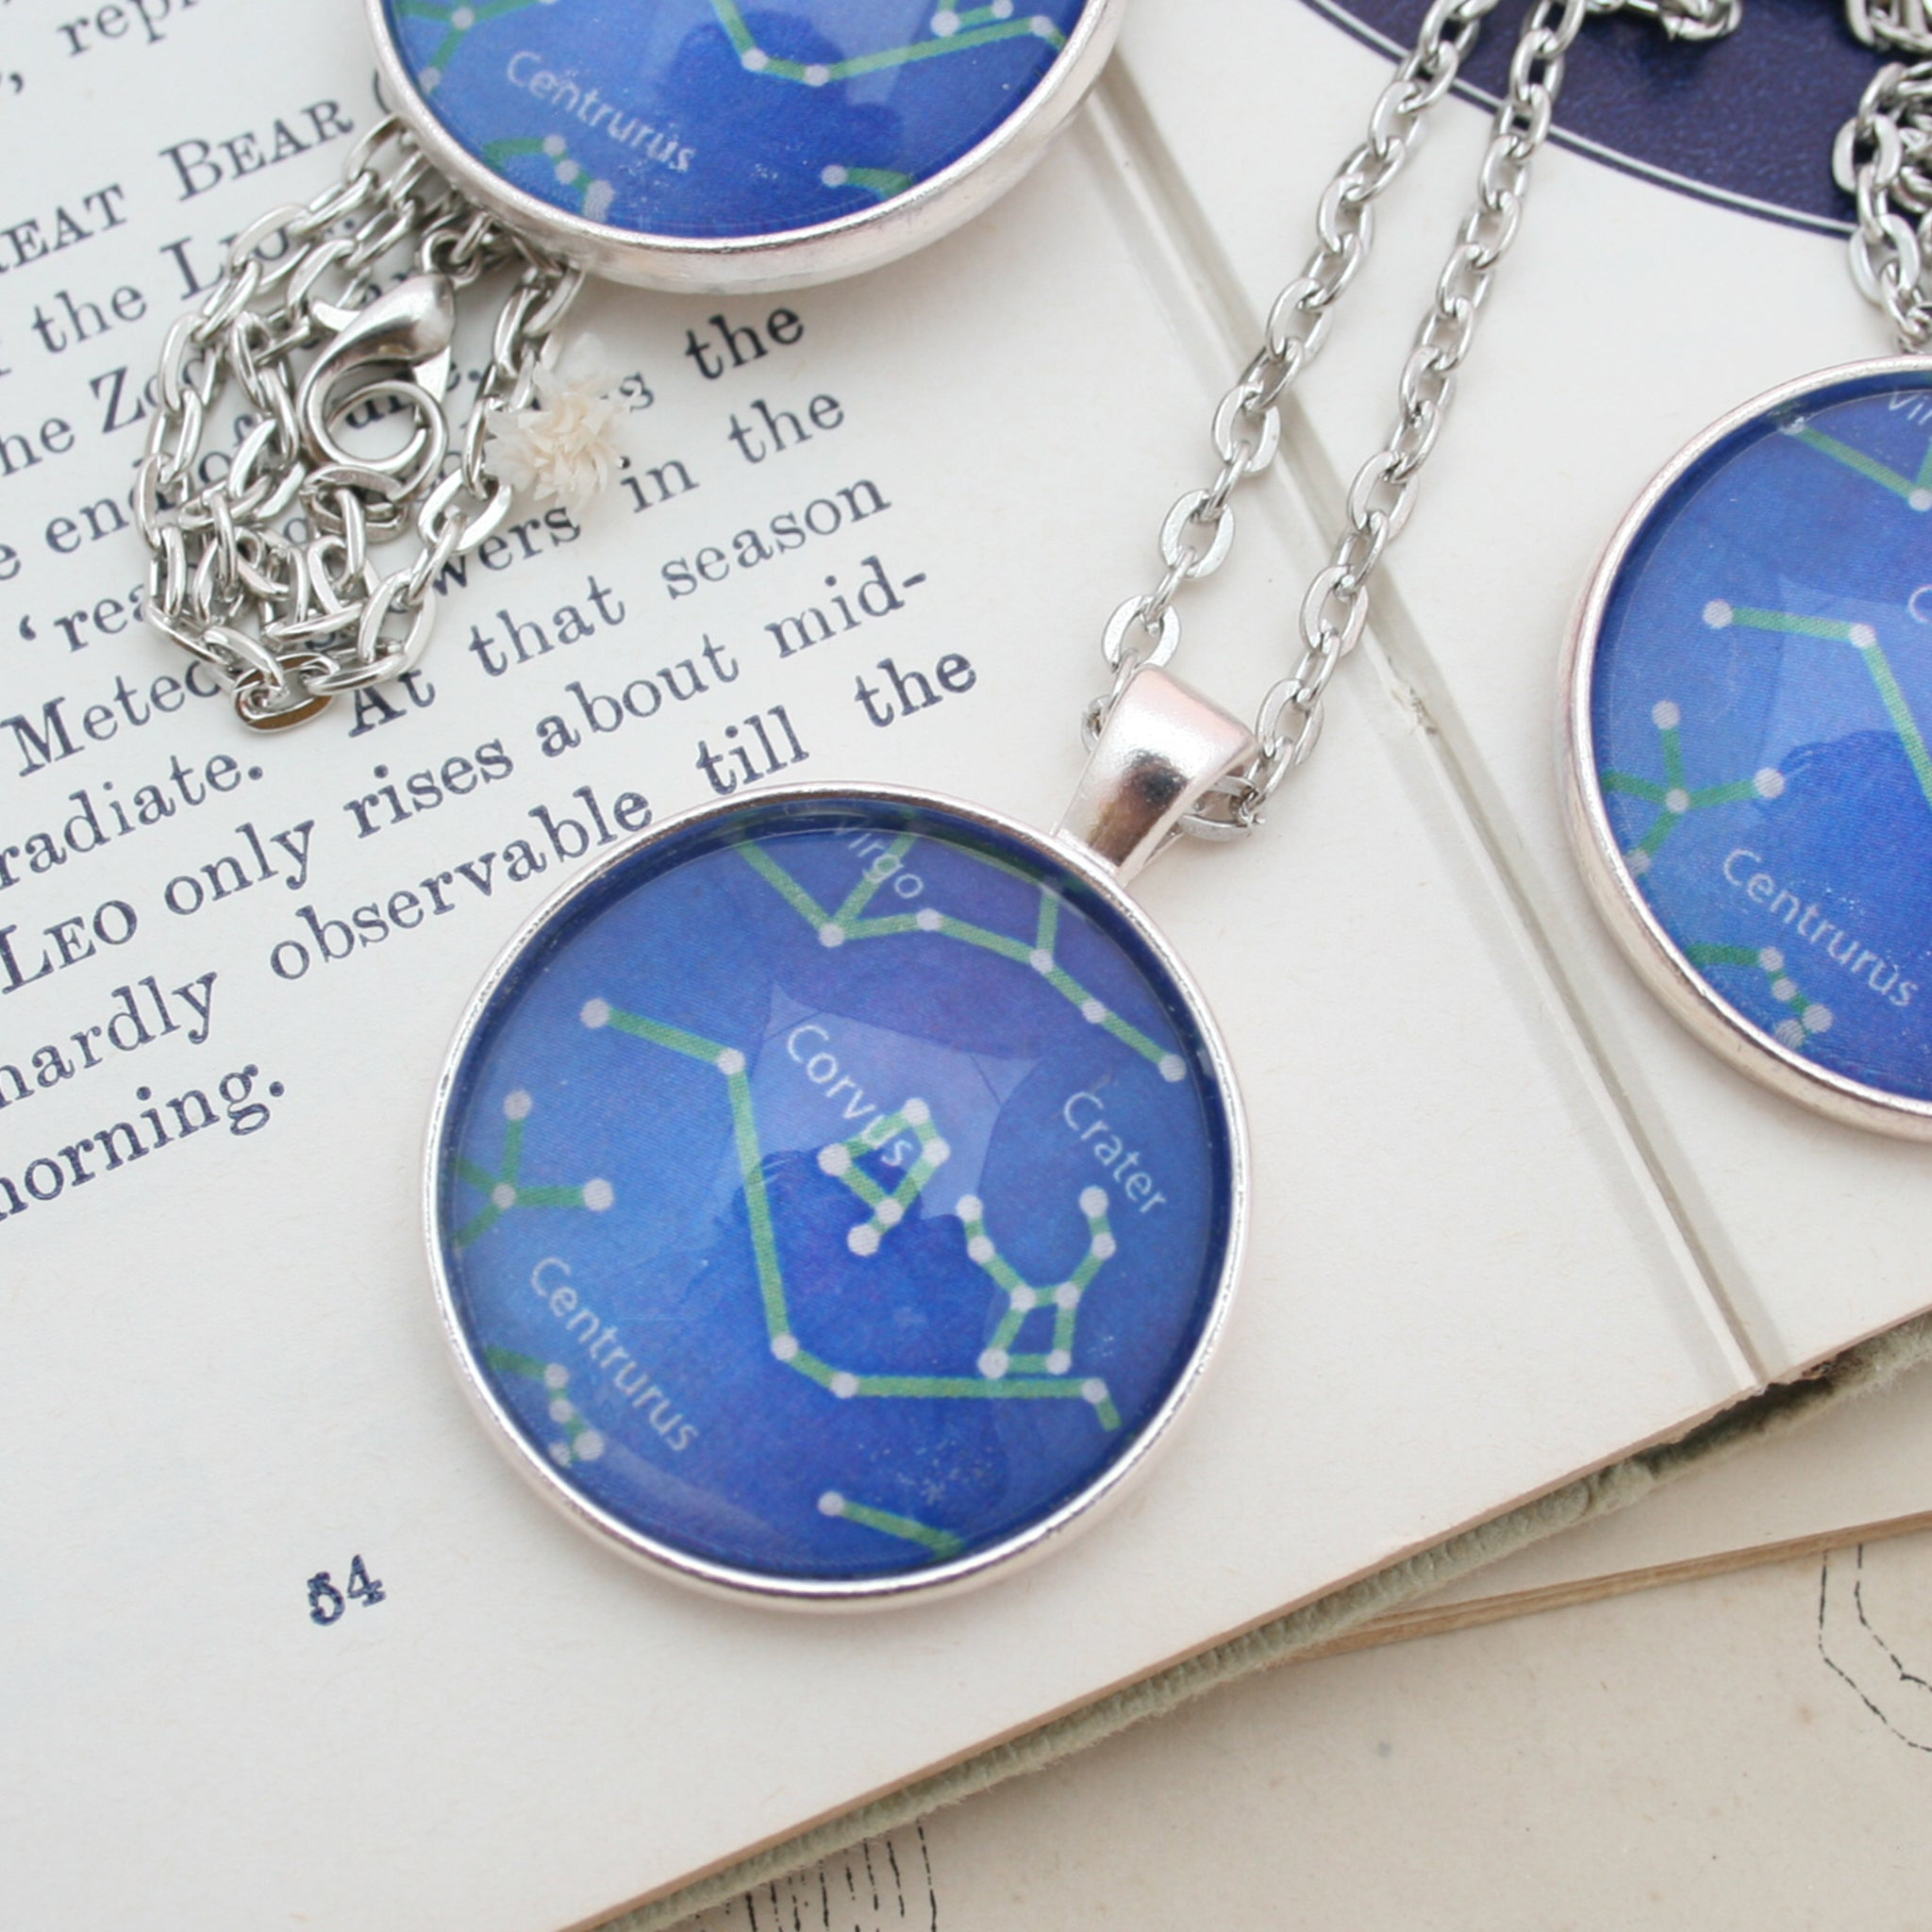 bespoke celestial necklace with map of heaven from given date and place